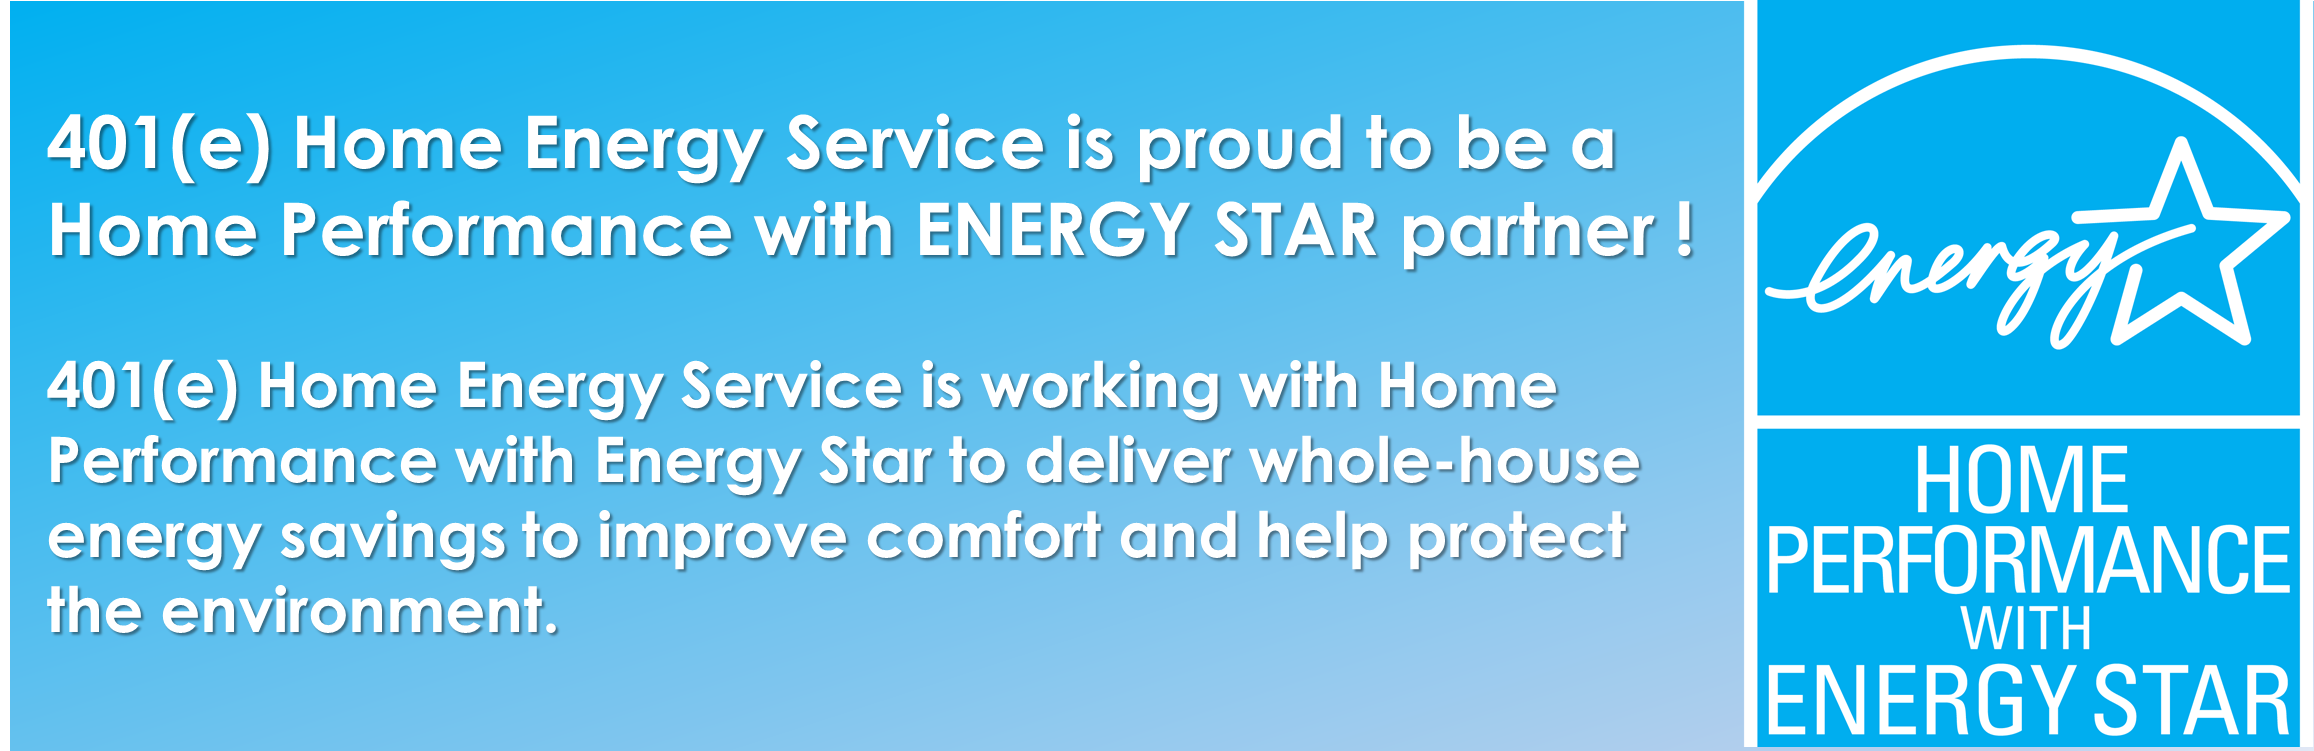 ENERGY STAR explanation and logo